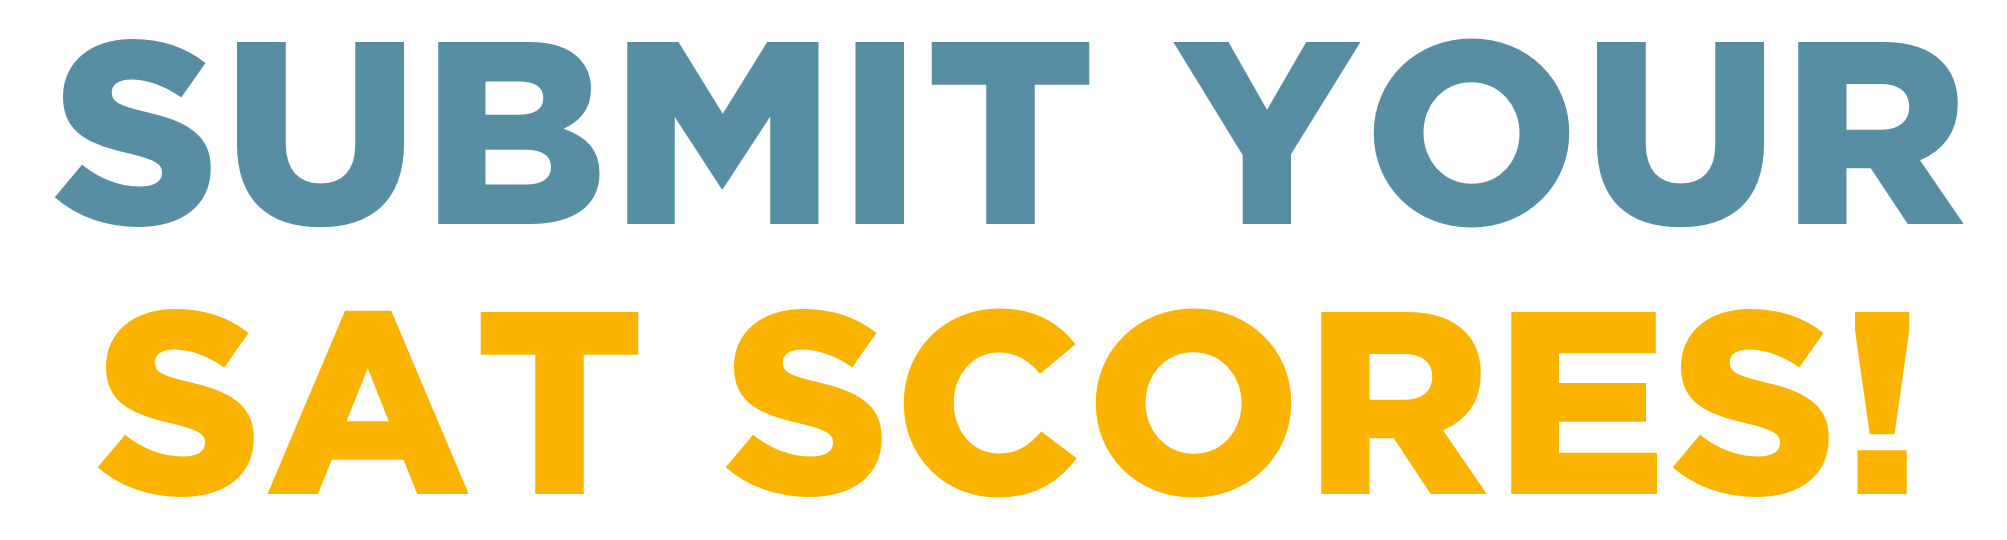 Submit your SAT scores